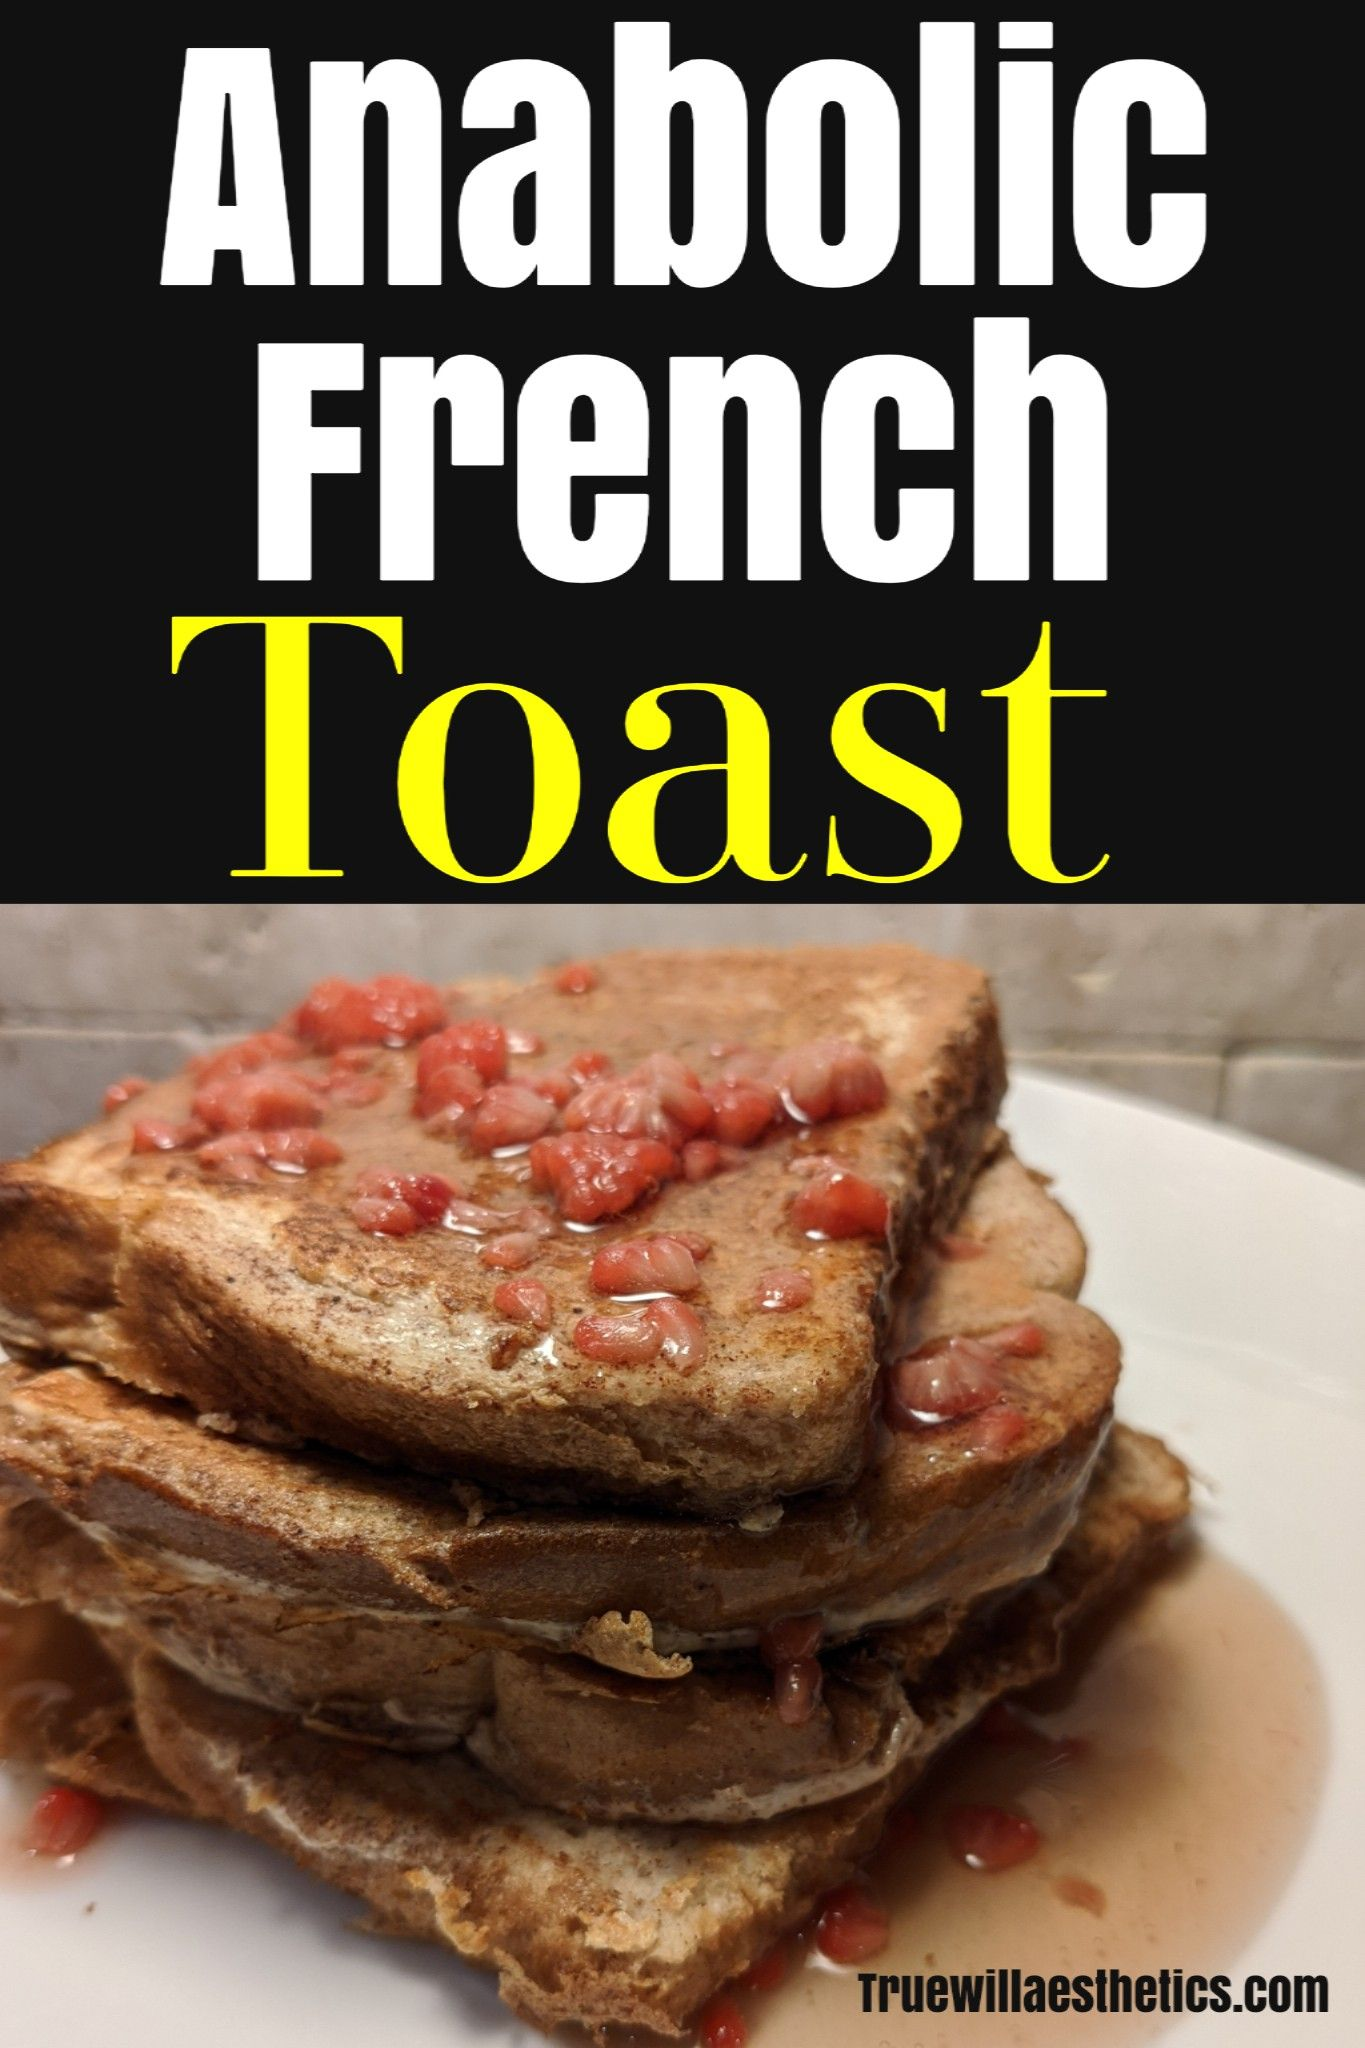 Anabolic French Toast Ideal Meals - True Will Aesthetics in 2020 | Protein french toast, French ...